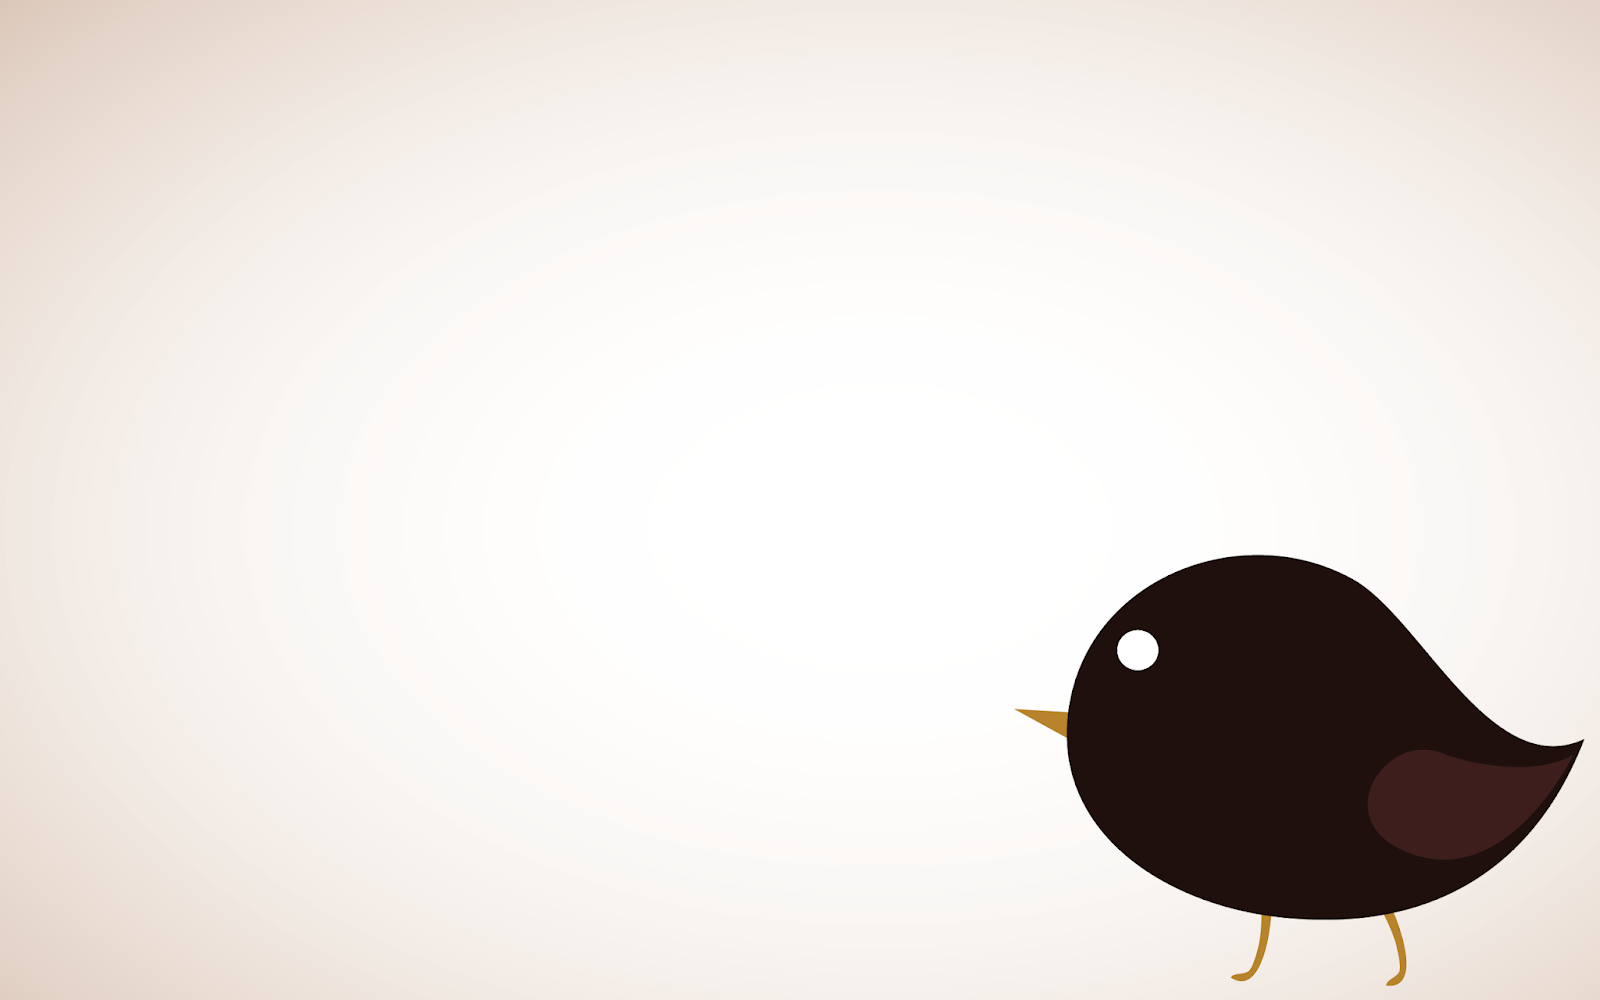 Cartoon bird PowerPoint background